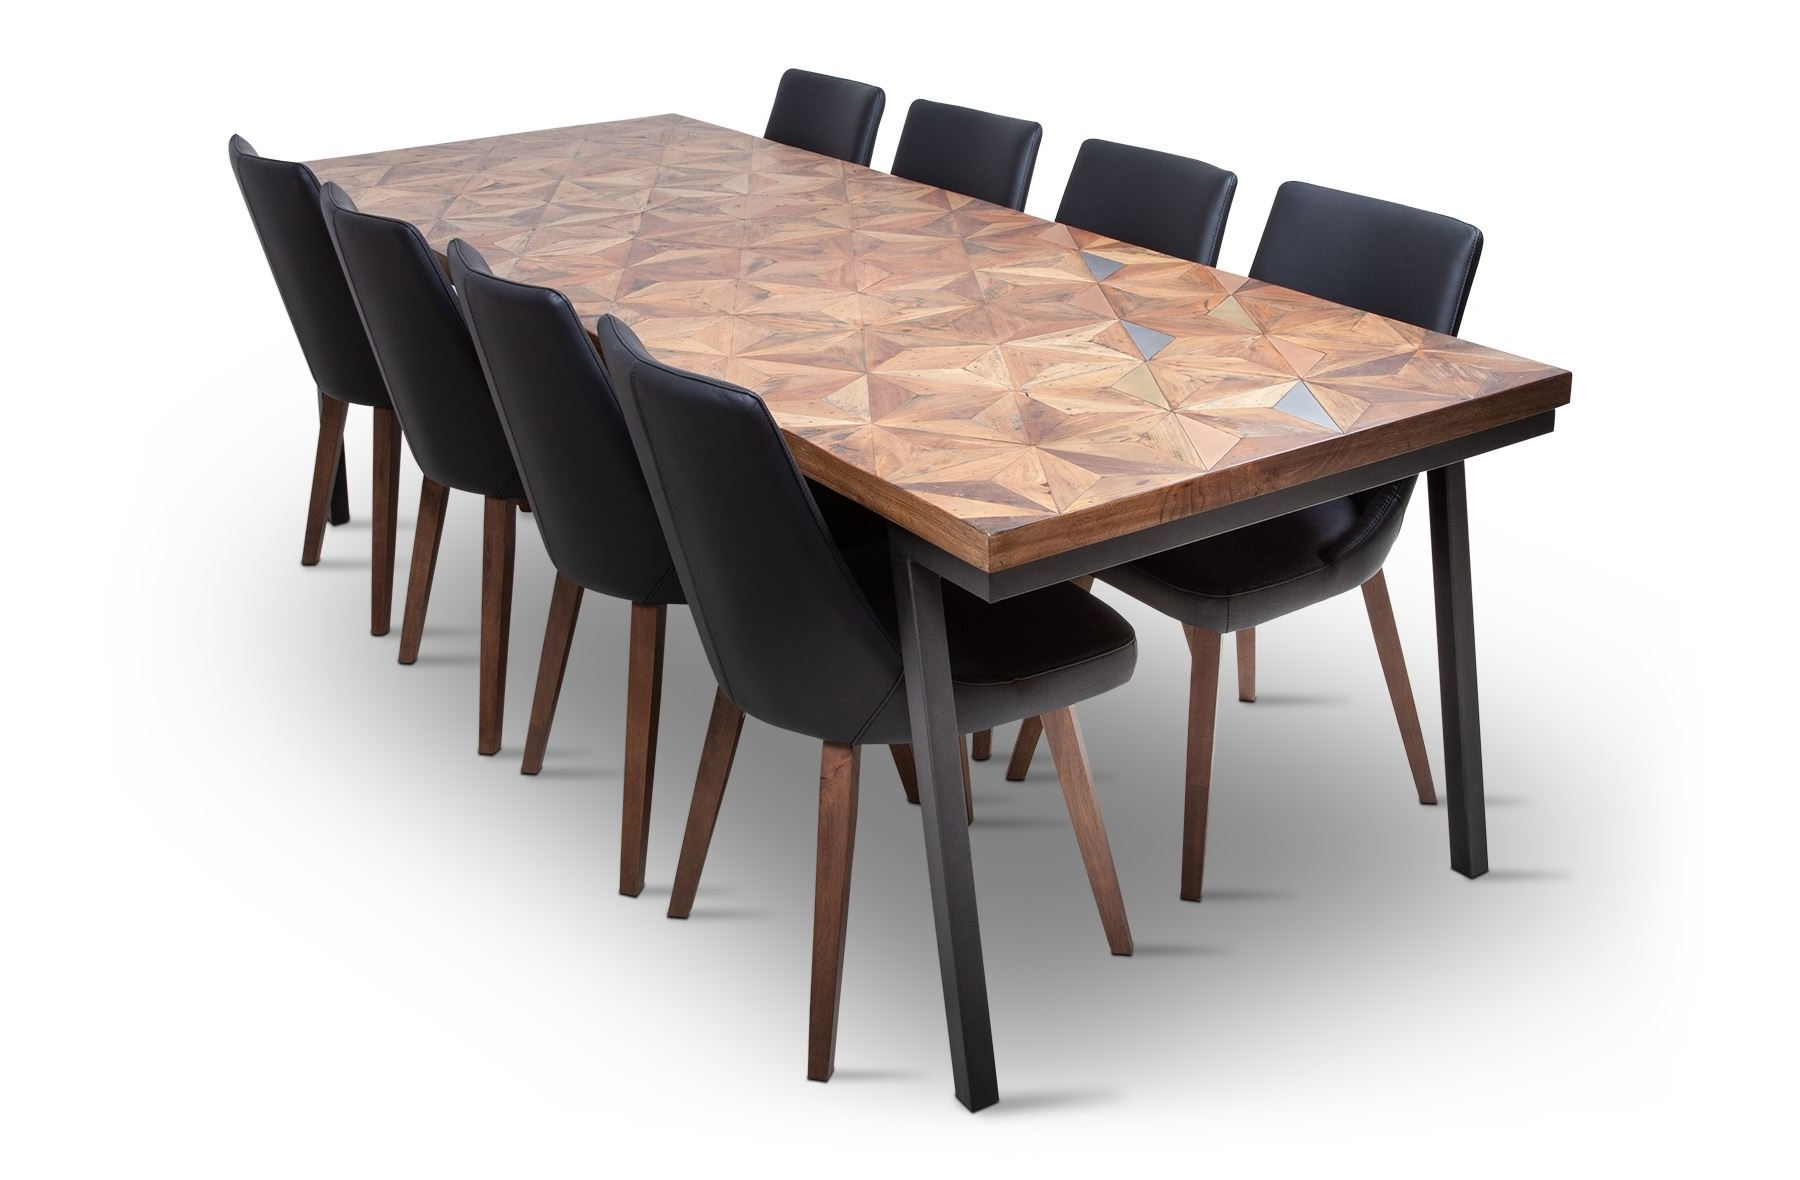 Famous Phoenix Dining Tables In Rice Furniture (View 4 of 25)